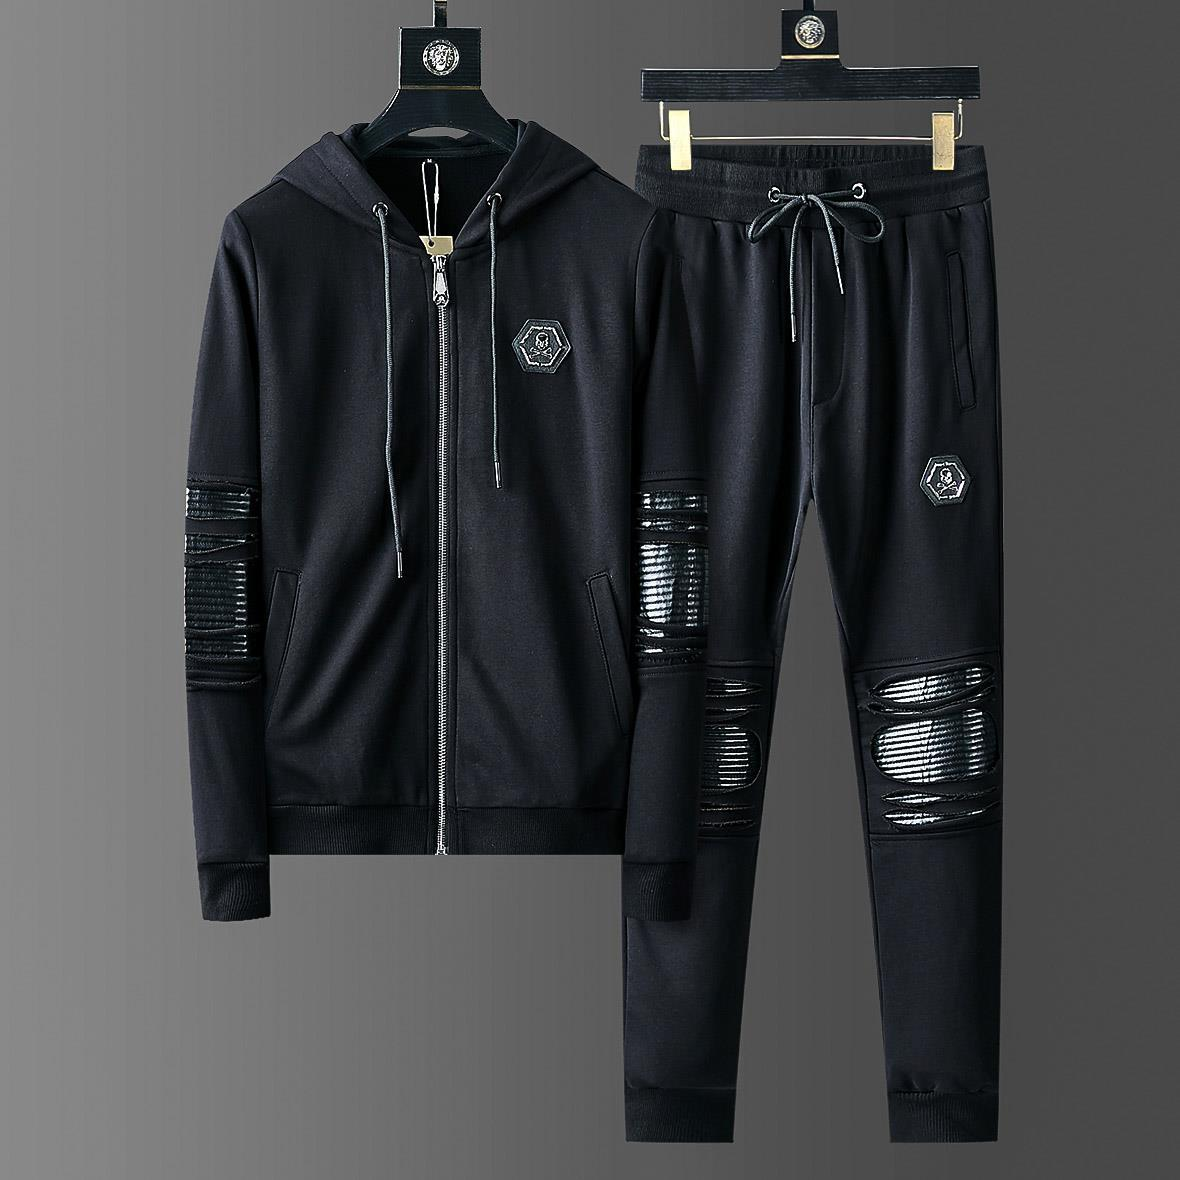 2019 Skulls Mens Hoody Sportswear Cotton Holes Clothes Casual Tracksuits Sweatshirts Coats Men Track Suits Joggers 2 Piece Set